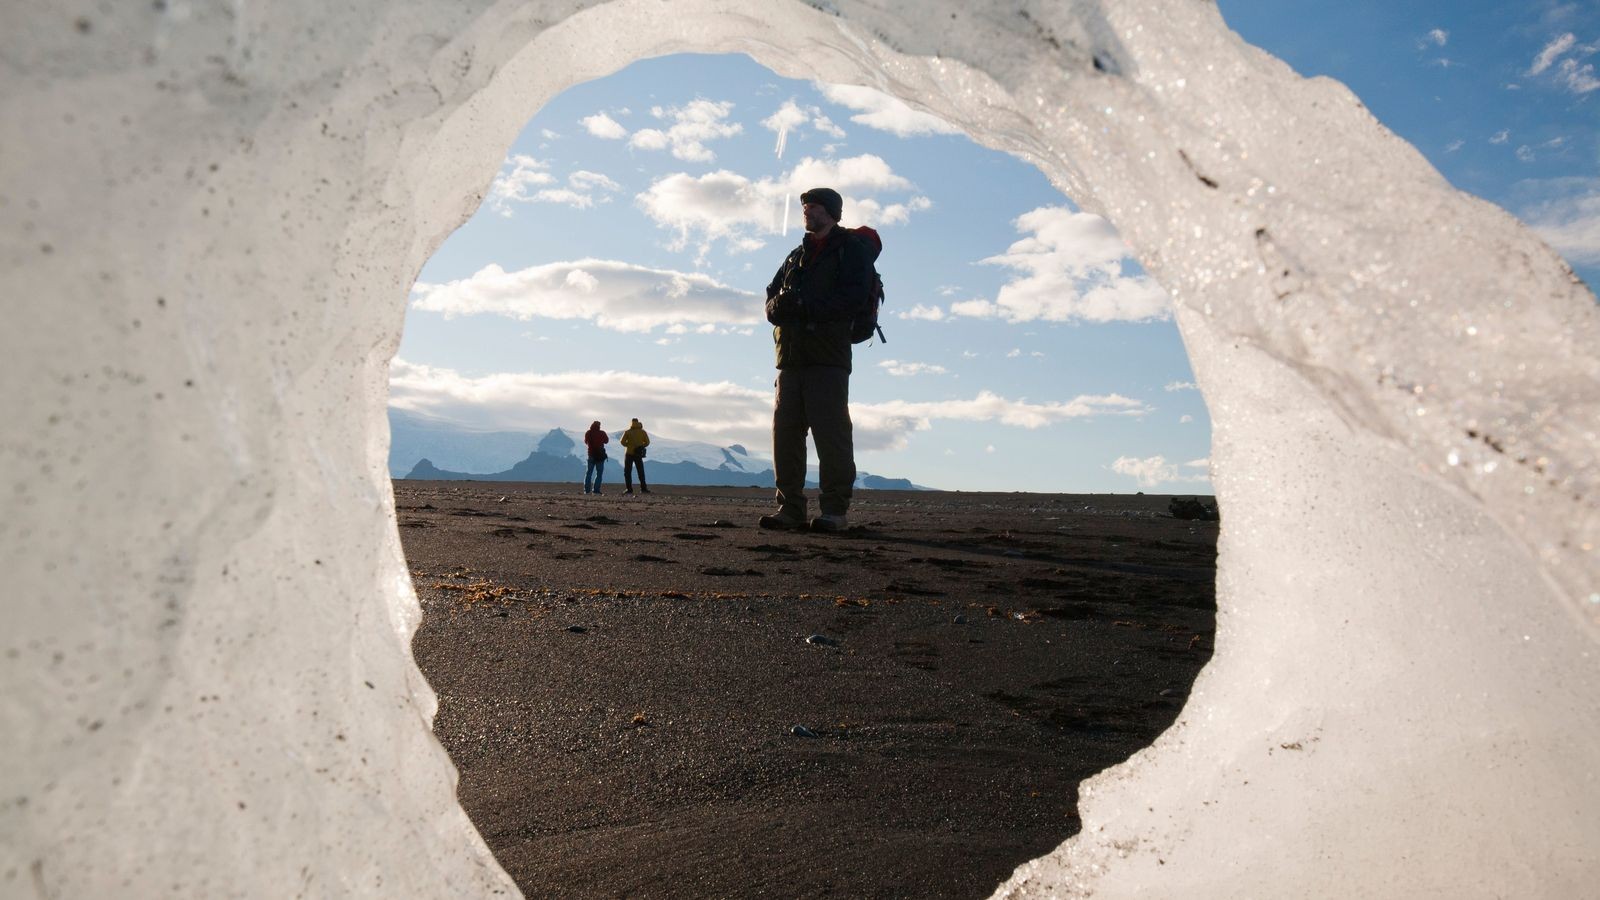 Observers regard melting ice in Jokulsarlon, Iceland. Climate change is one of five goals, or 'Earthshots', entrants are challenged ...